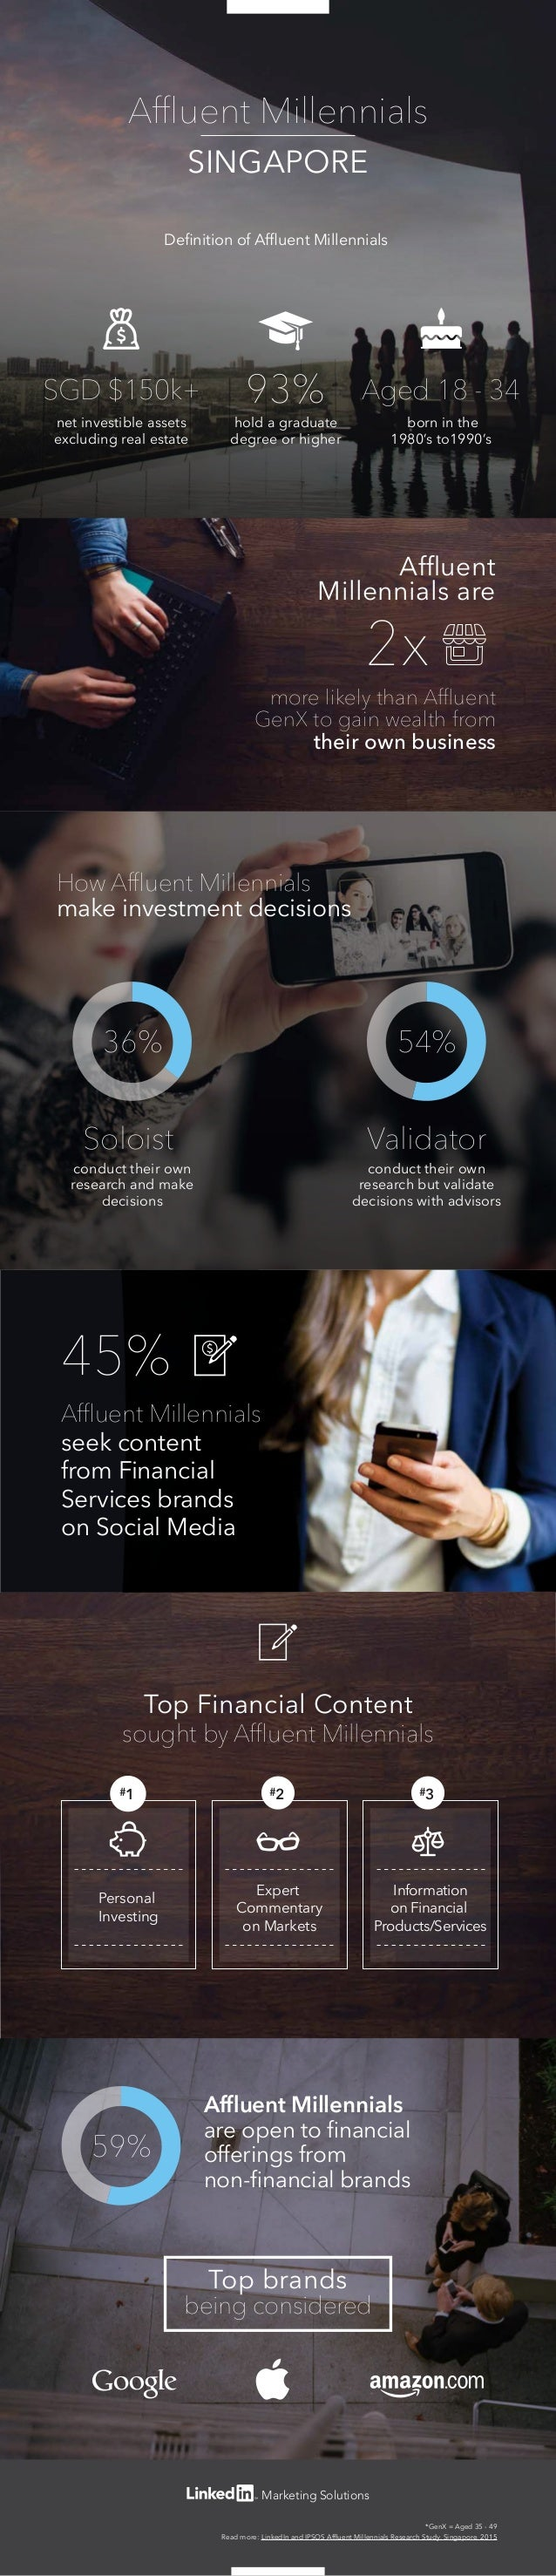 Marketing Solutions SGD $150k+ Aged 18 - 3493% 2x more likely than Affluent GenX to gain wealth from their own business Affl...